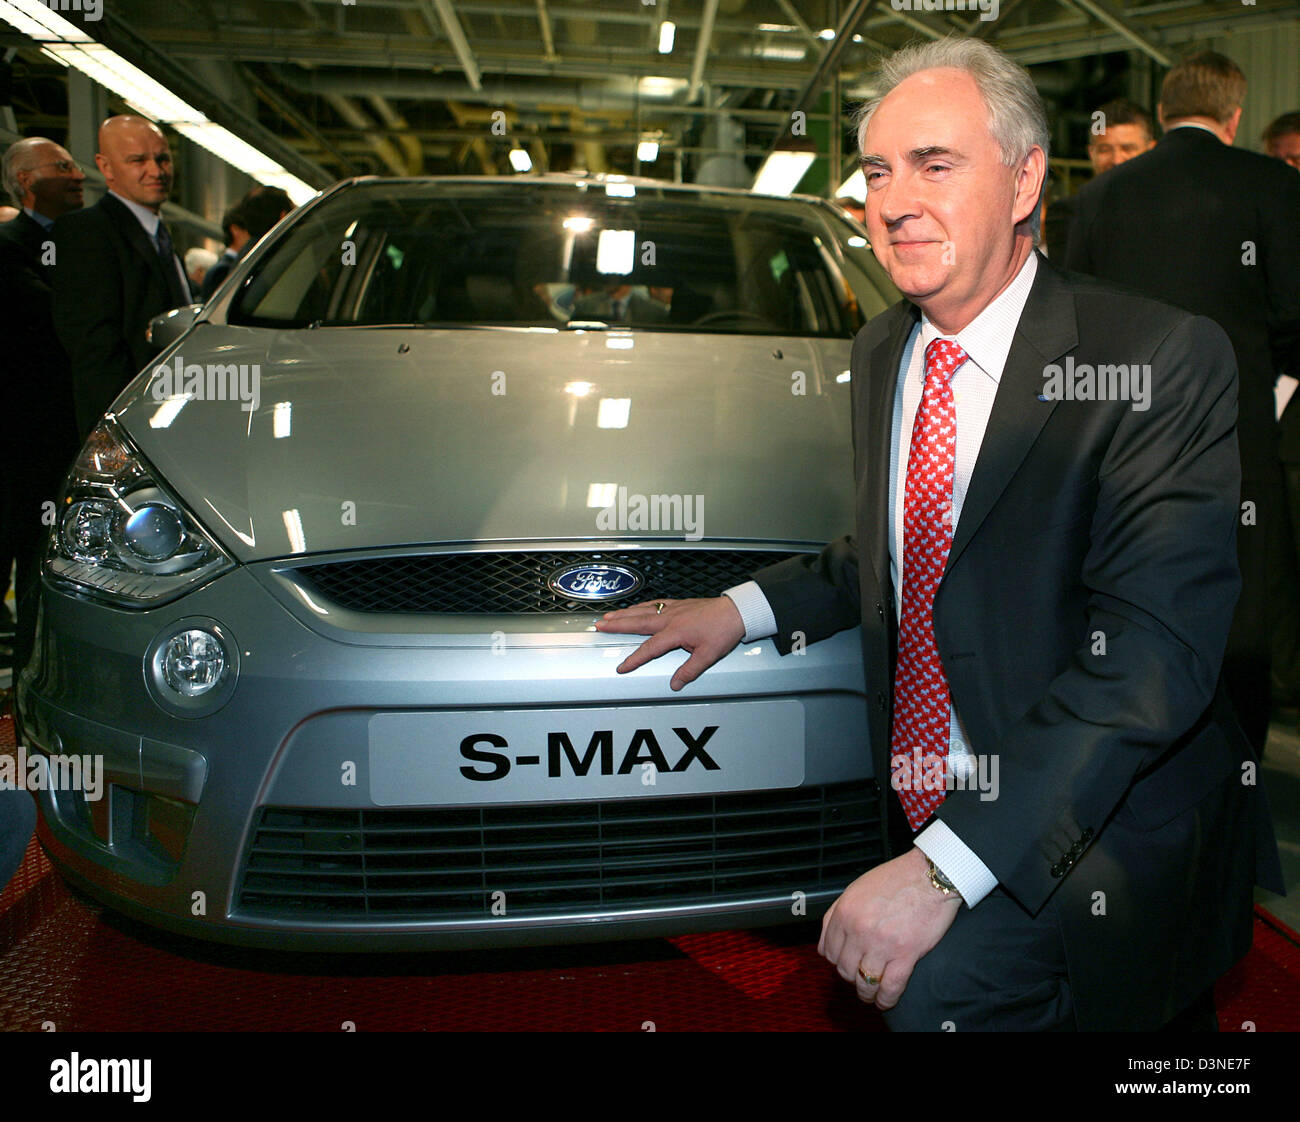 John Fleming, head of Ford's European division, presents the new Ford S-Max in Genk, Belgium, Tuesday 18 April - Stock Image